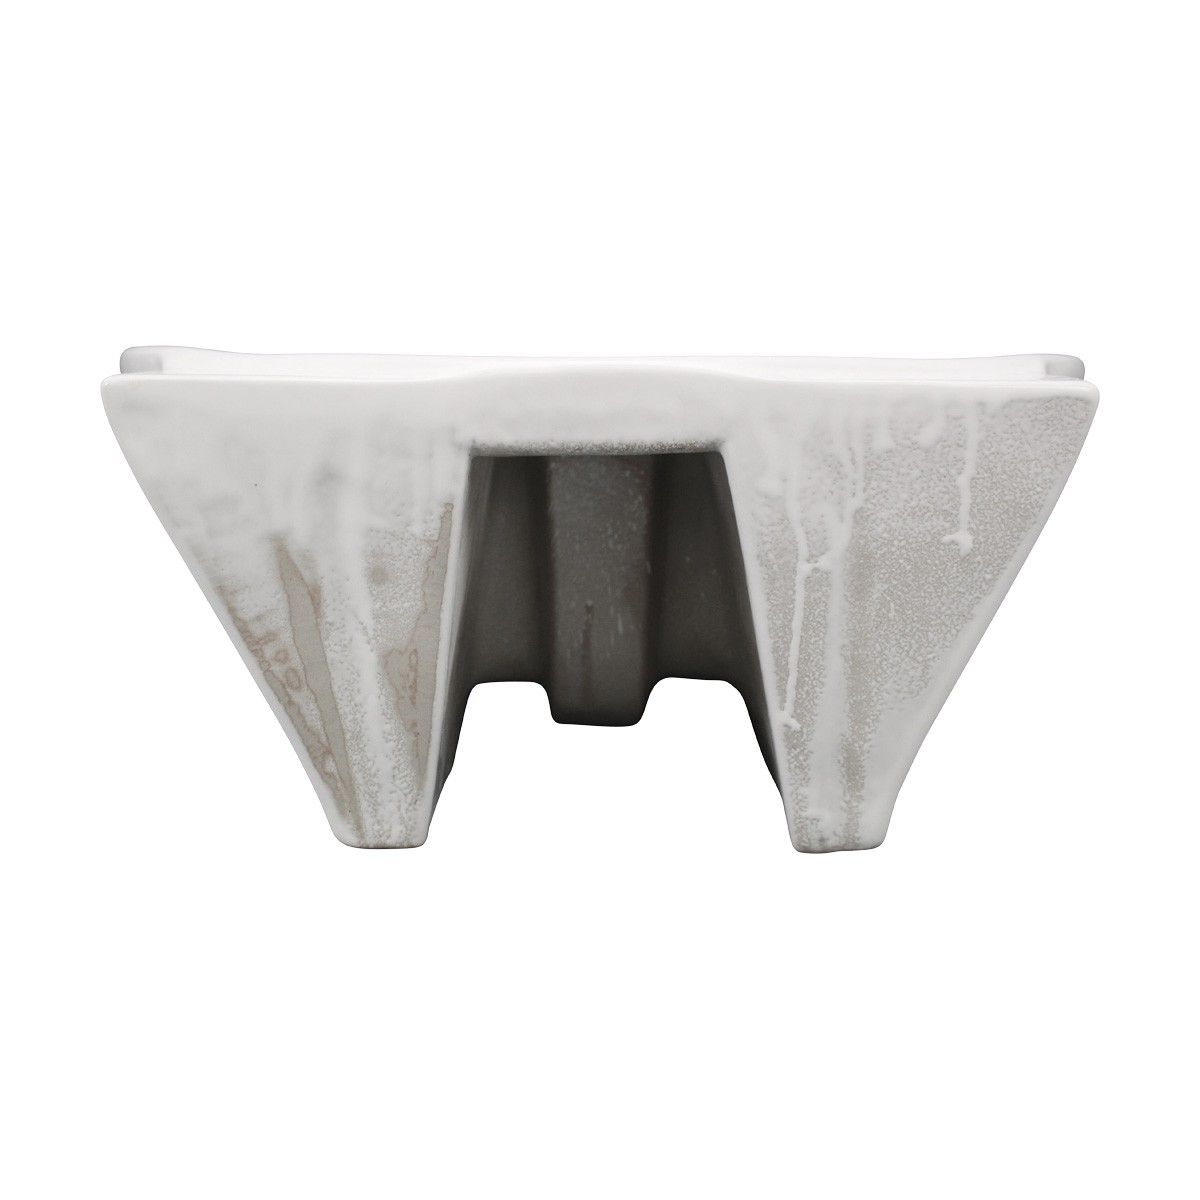 Bathroom Vessel Above Counter Sink White China Single Faucet Hole With Overflow bathroom vessel sinks Countertop vessel sink Bathroom Vessel Sink